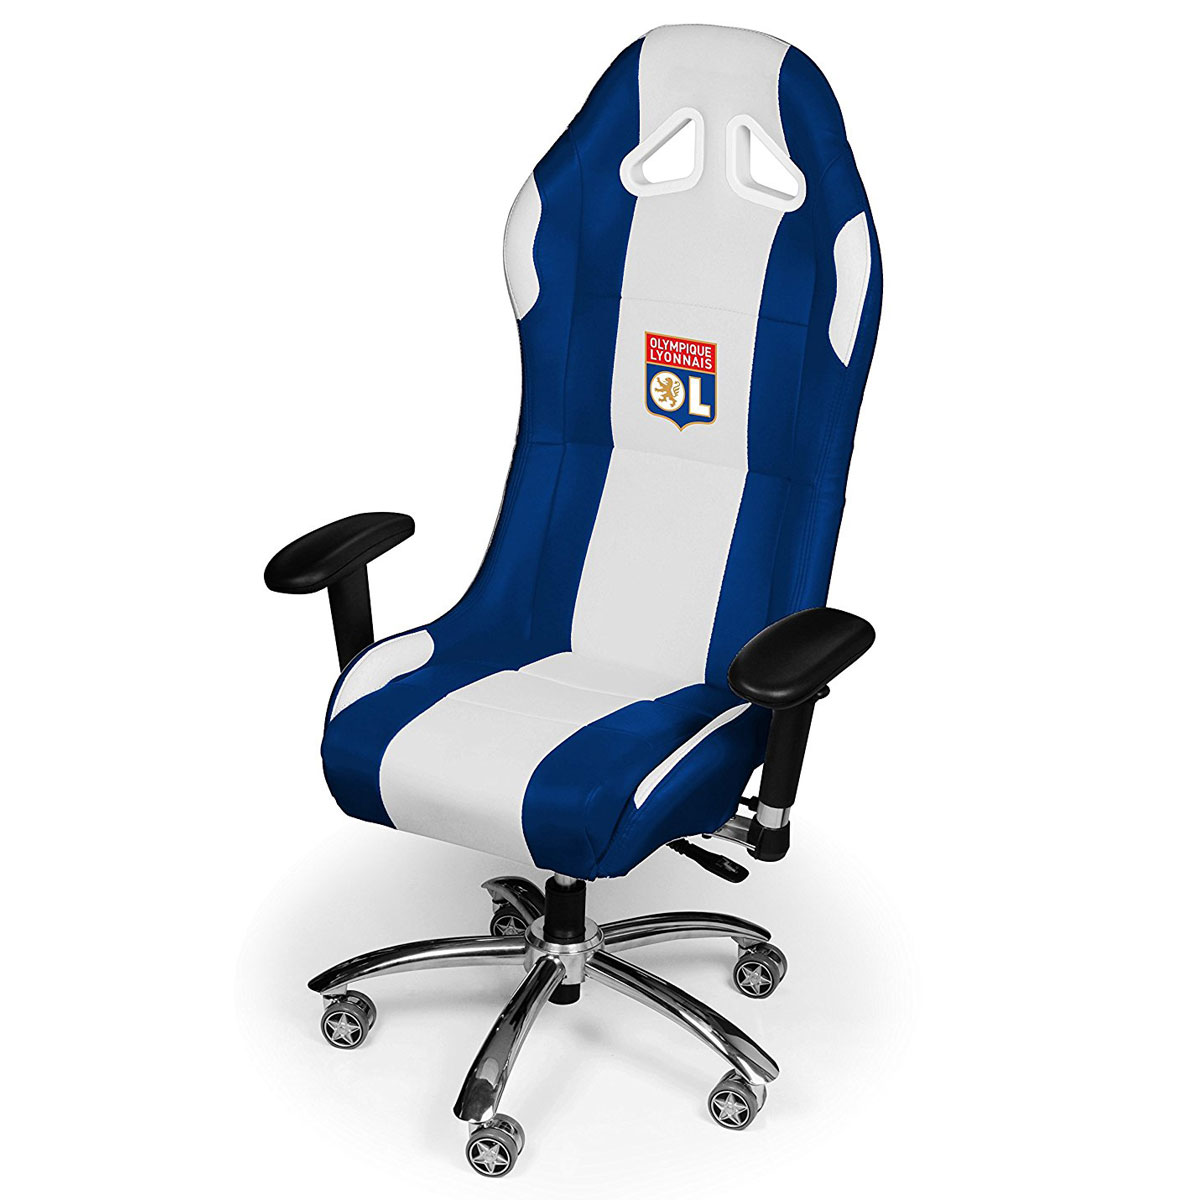 subsonic football gaming chair ol fauteuil gamer. Black Bedroom Furniture Sets. Home Design Ideas